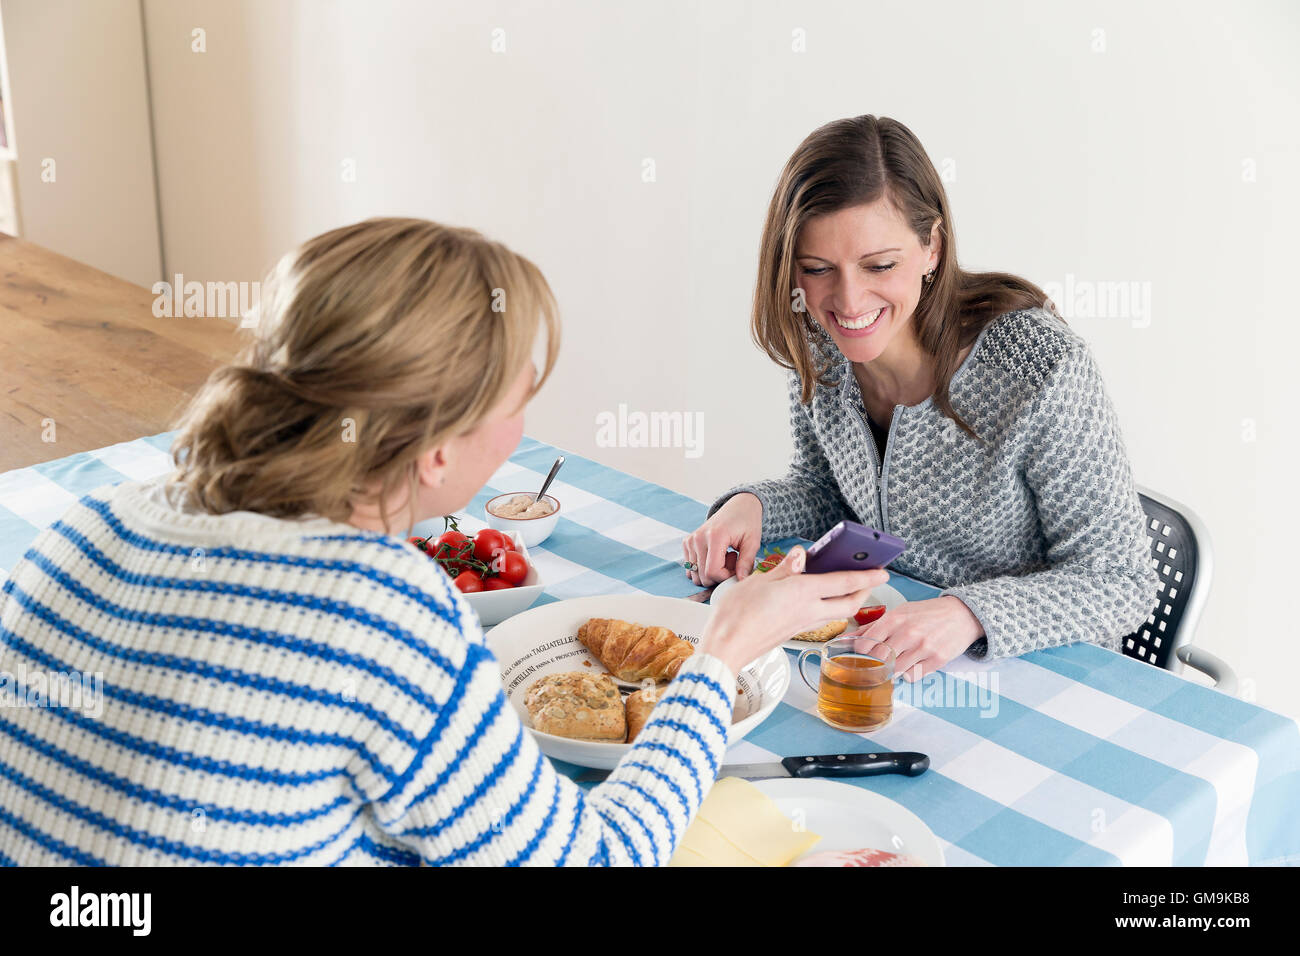 Women at laid table in dining room - Stock Image